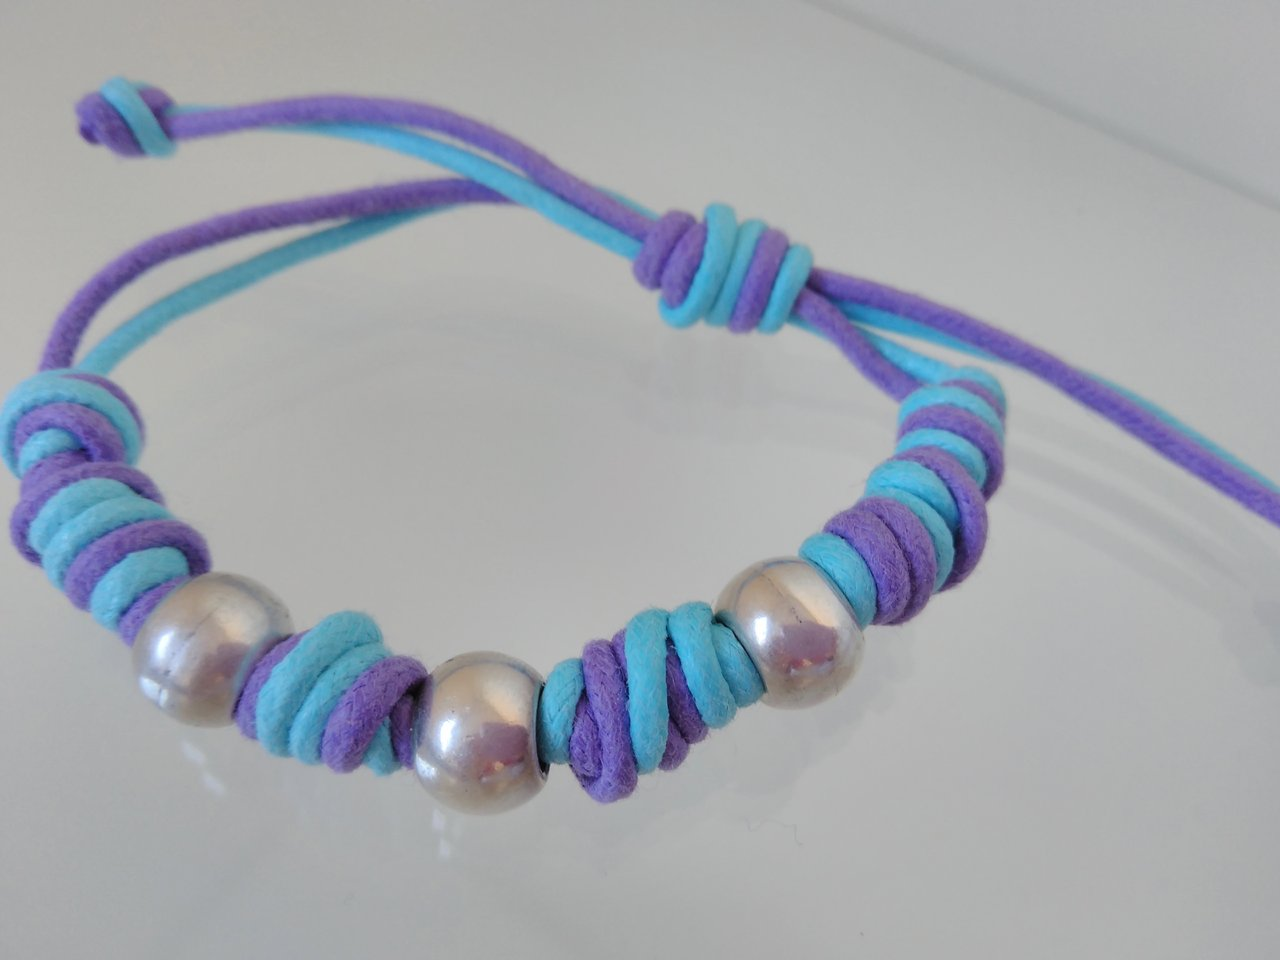 DOUBLE CORD BRACELET WITH ZAMAK BEADS